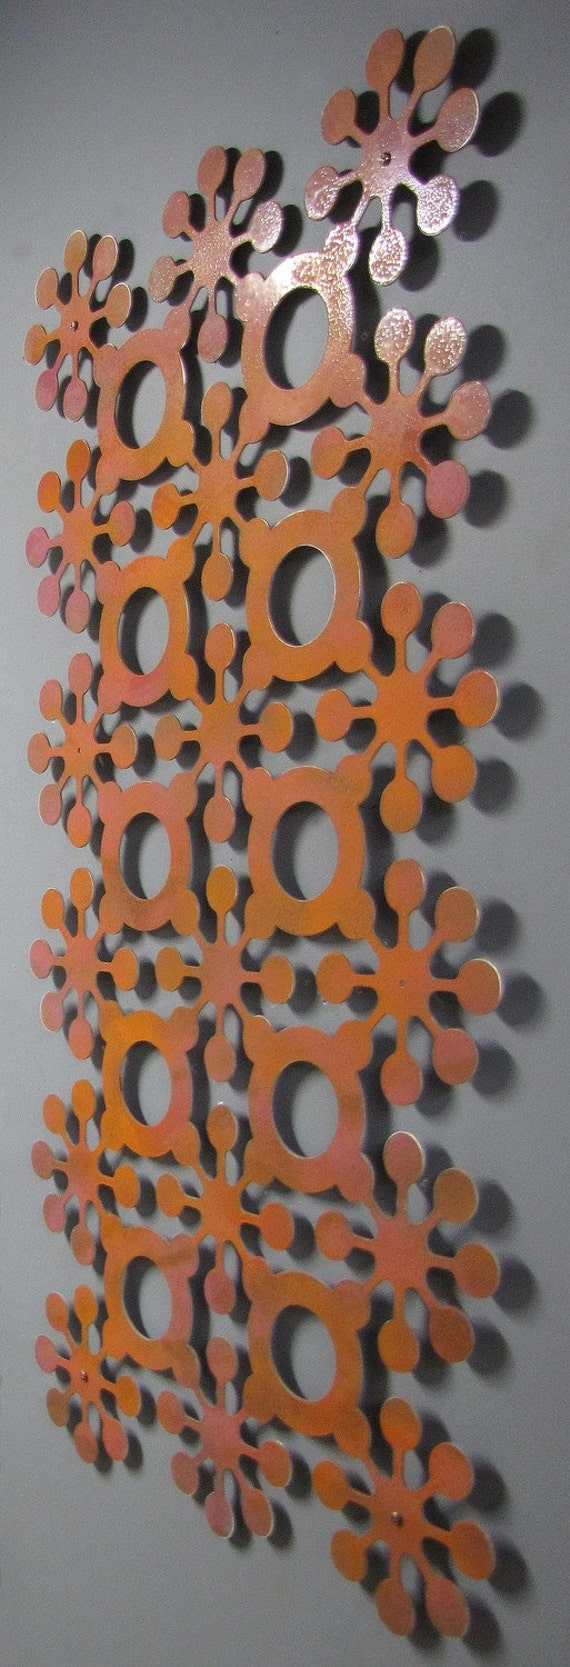 Mod Flowers No 1 Floating Wall Sculpture 23 X 46 available in 25 colors